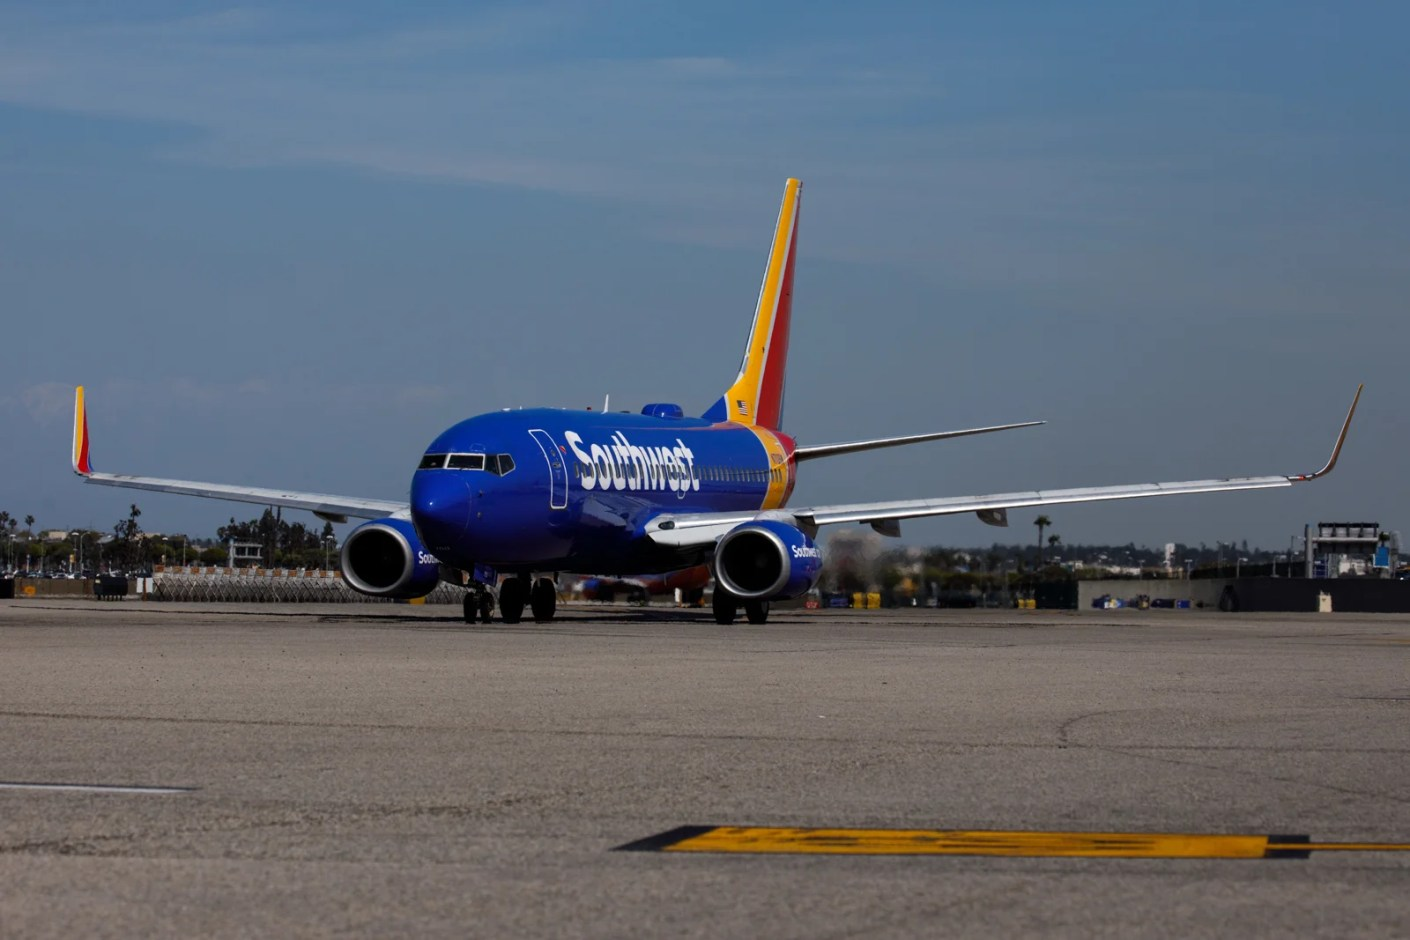 A Southwest Airlines Co. Boeing 737-700 (Registration N713SW) taxis on the tarmac at Los Angeles International Airport (LAX) on Friday, March 29, 2019 in Los Angeles, Calif. © 2019 Patrick T. Fallon for The Points Guy